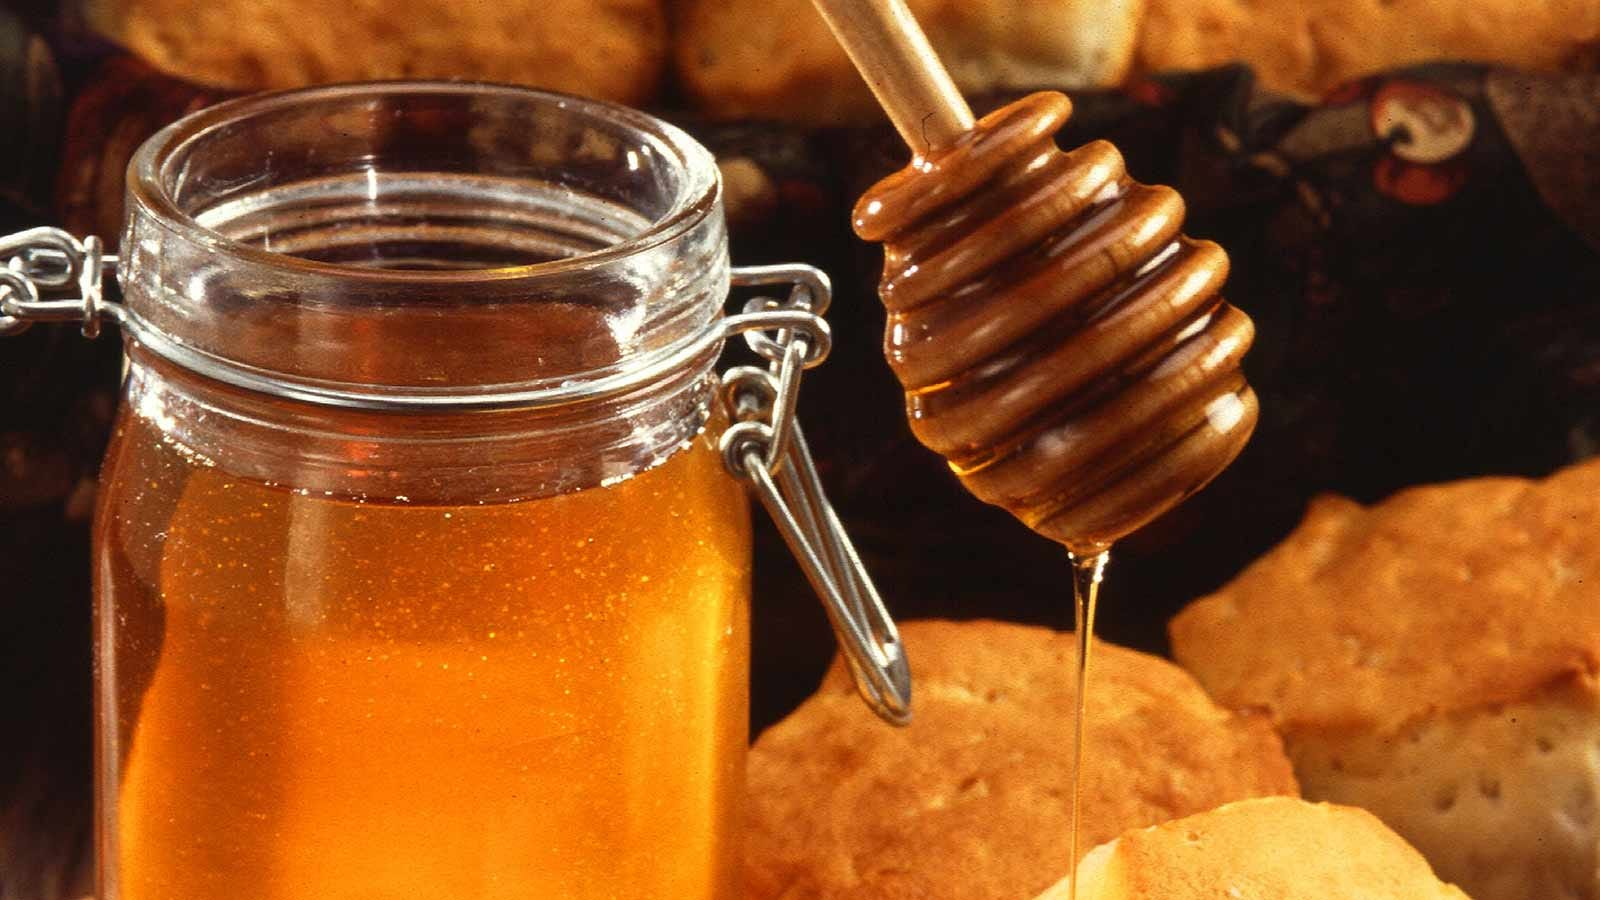 Jar of golden honey with a drizzle wand loaded with honey beside it.